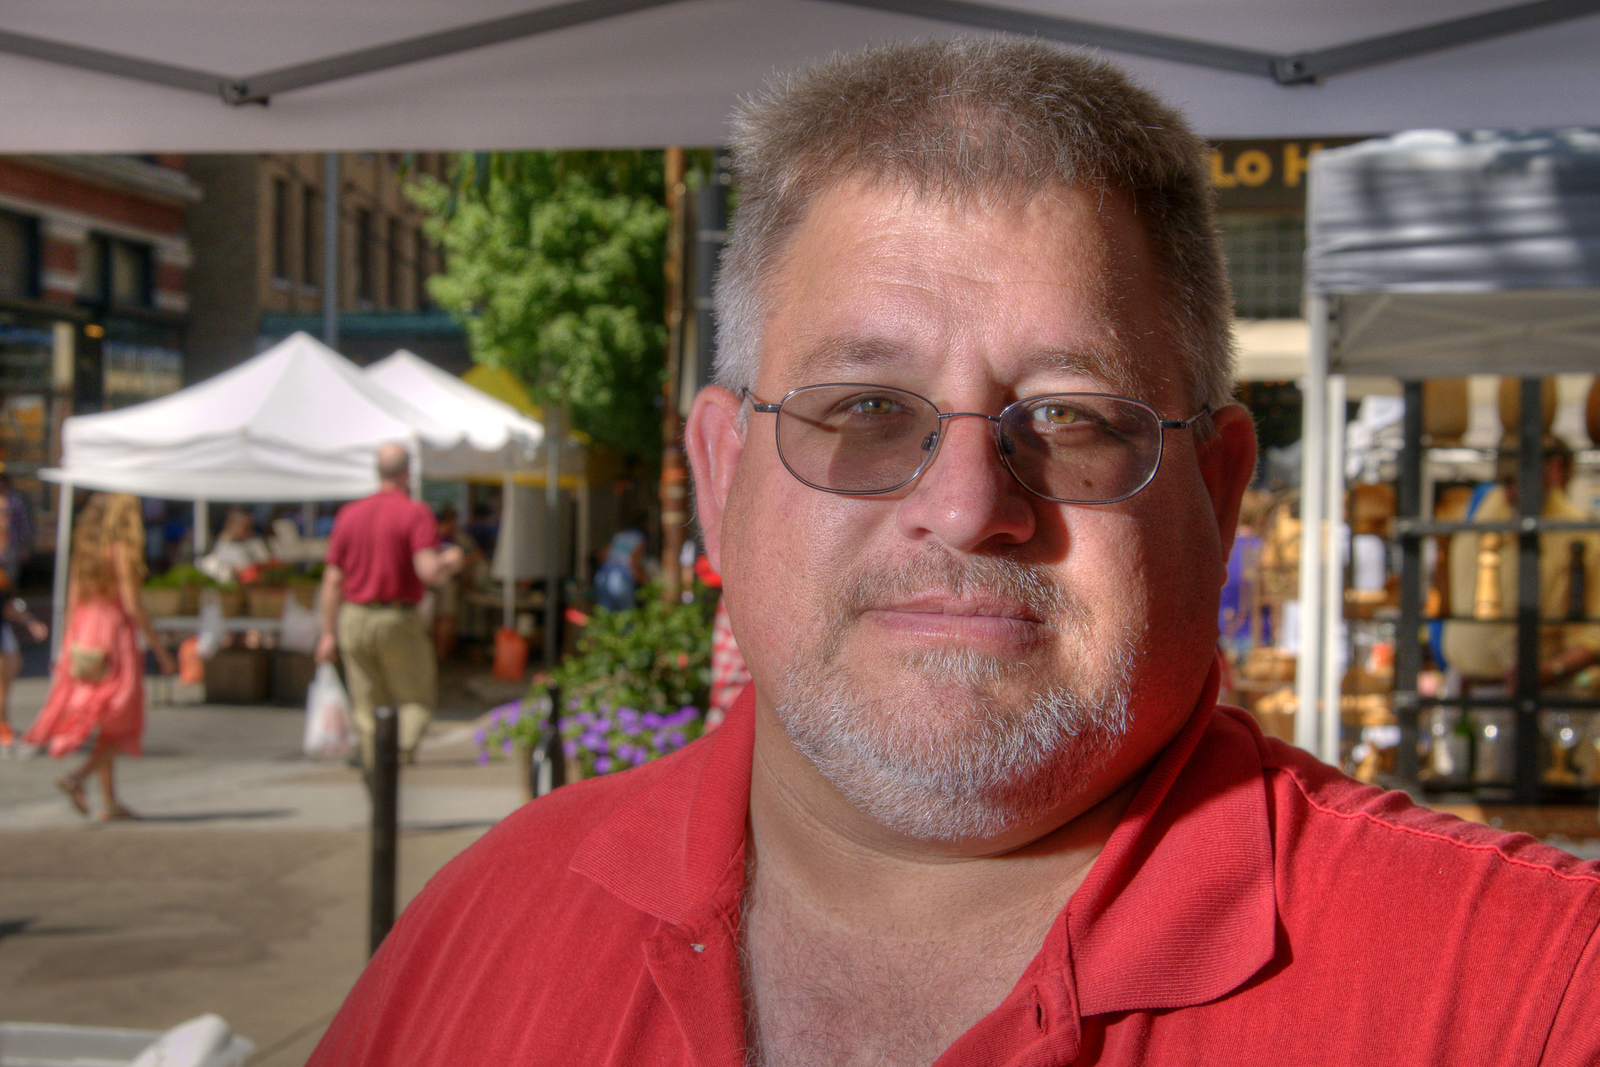 The Fruit and Berry Patch co-owner Jeff Fox poses under his tent at the Market Square Farmers' Market, an open-air market in the city's Market Square, in Knoxville, TN on Saturday, June 7, 2014. Copyright 2014 Jason Barnette